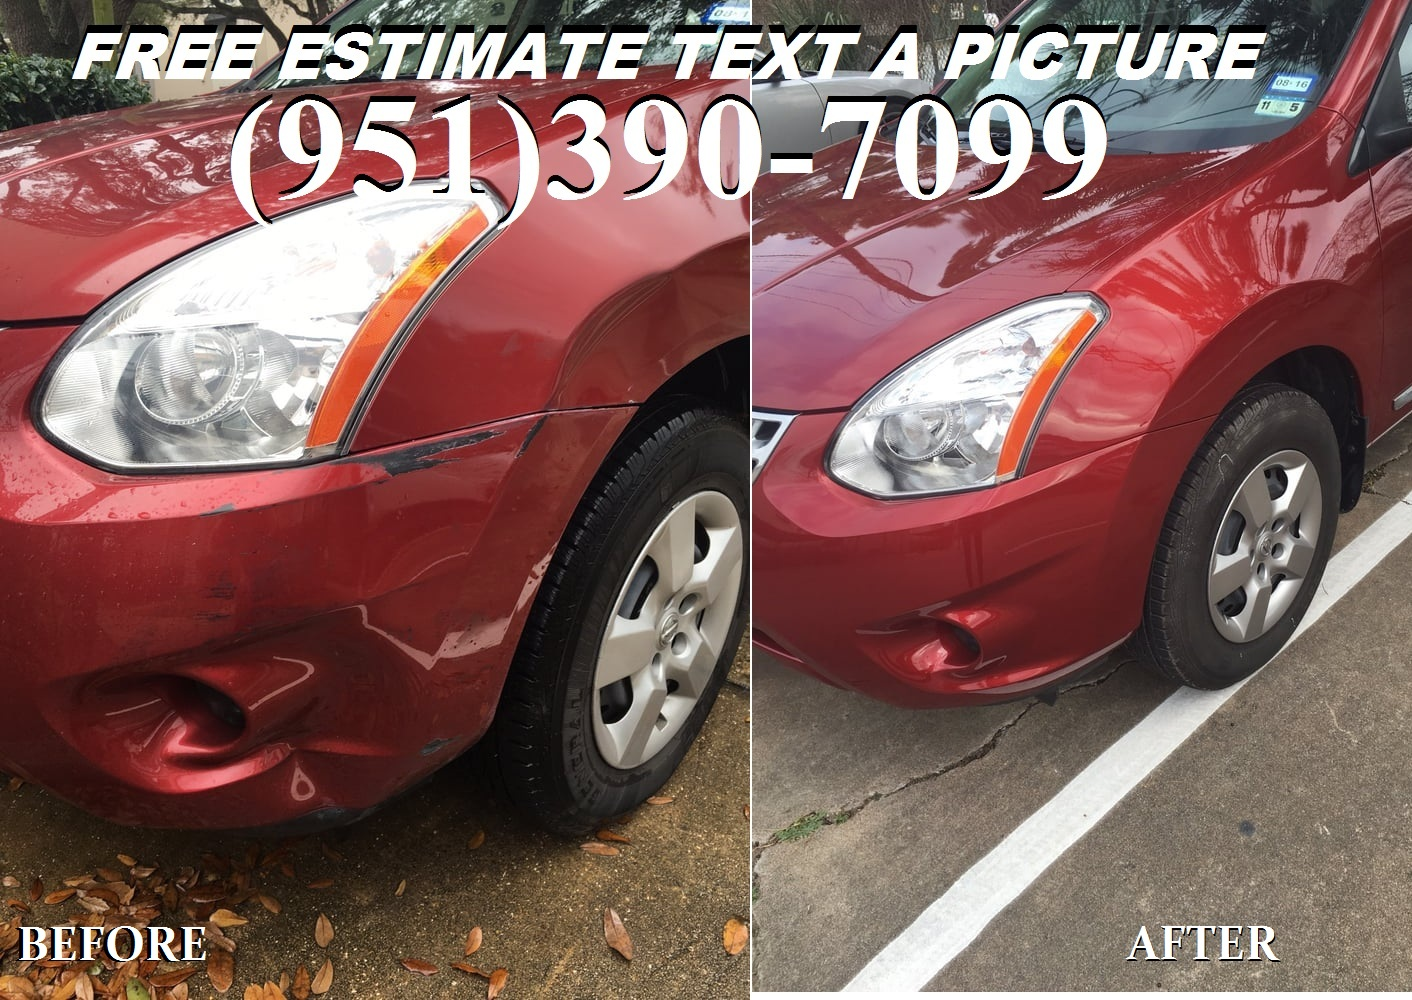 CAR DENT AND PAINT FREE ESTIMATES BY PHONE MOBILE WE COME TO YOU